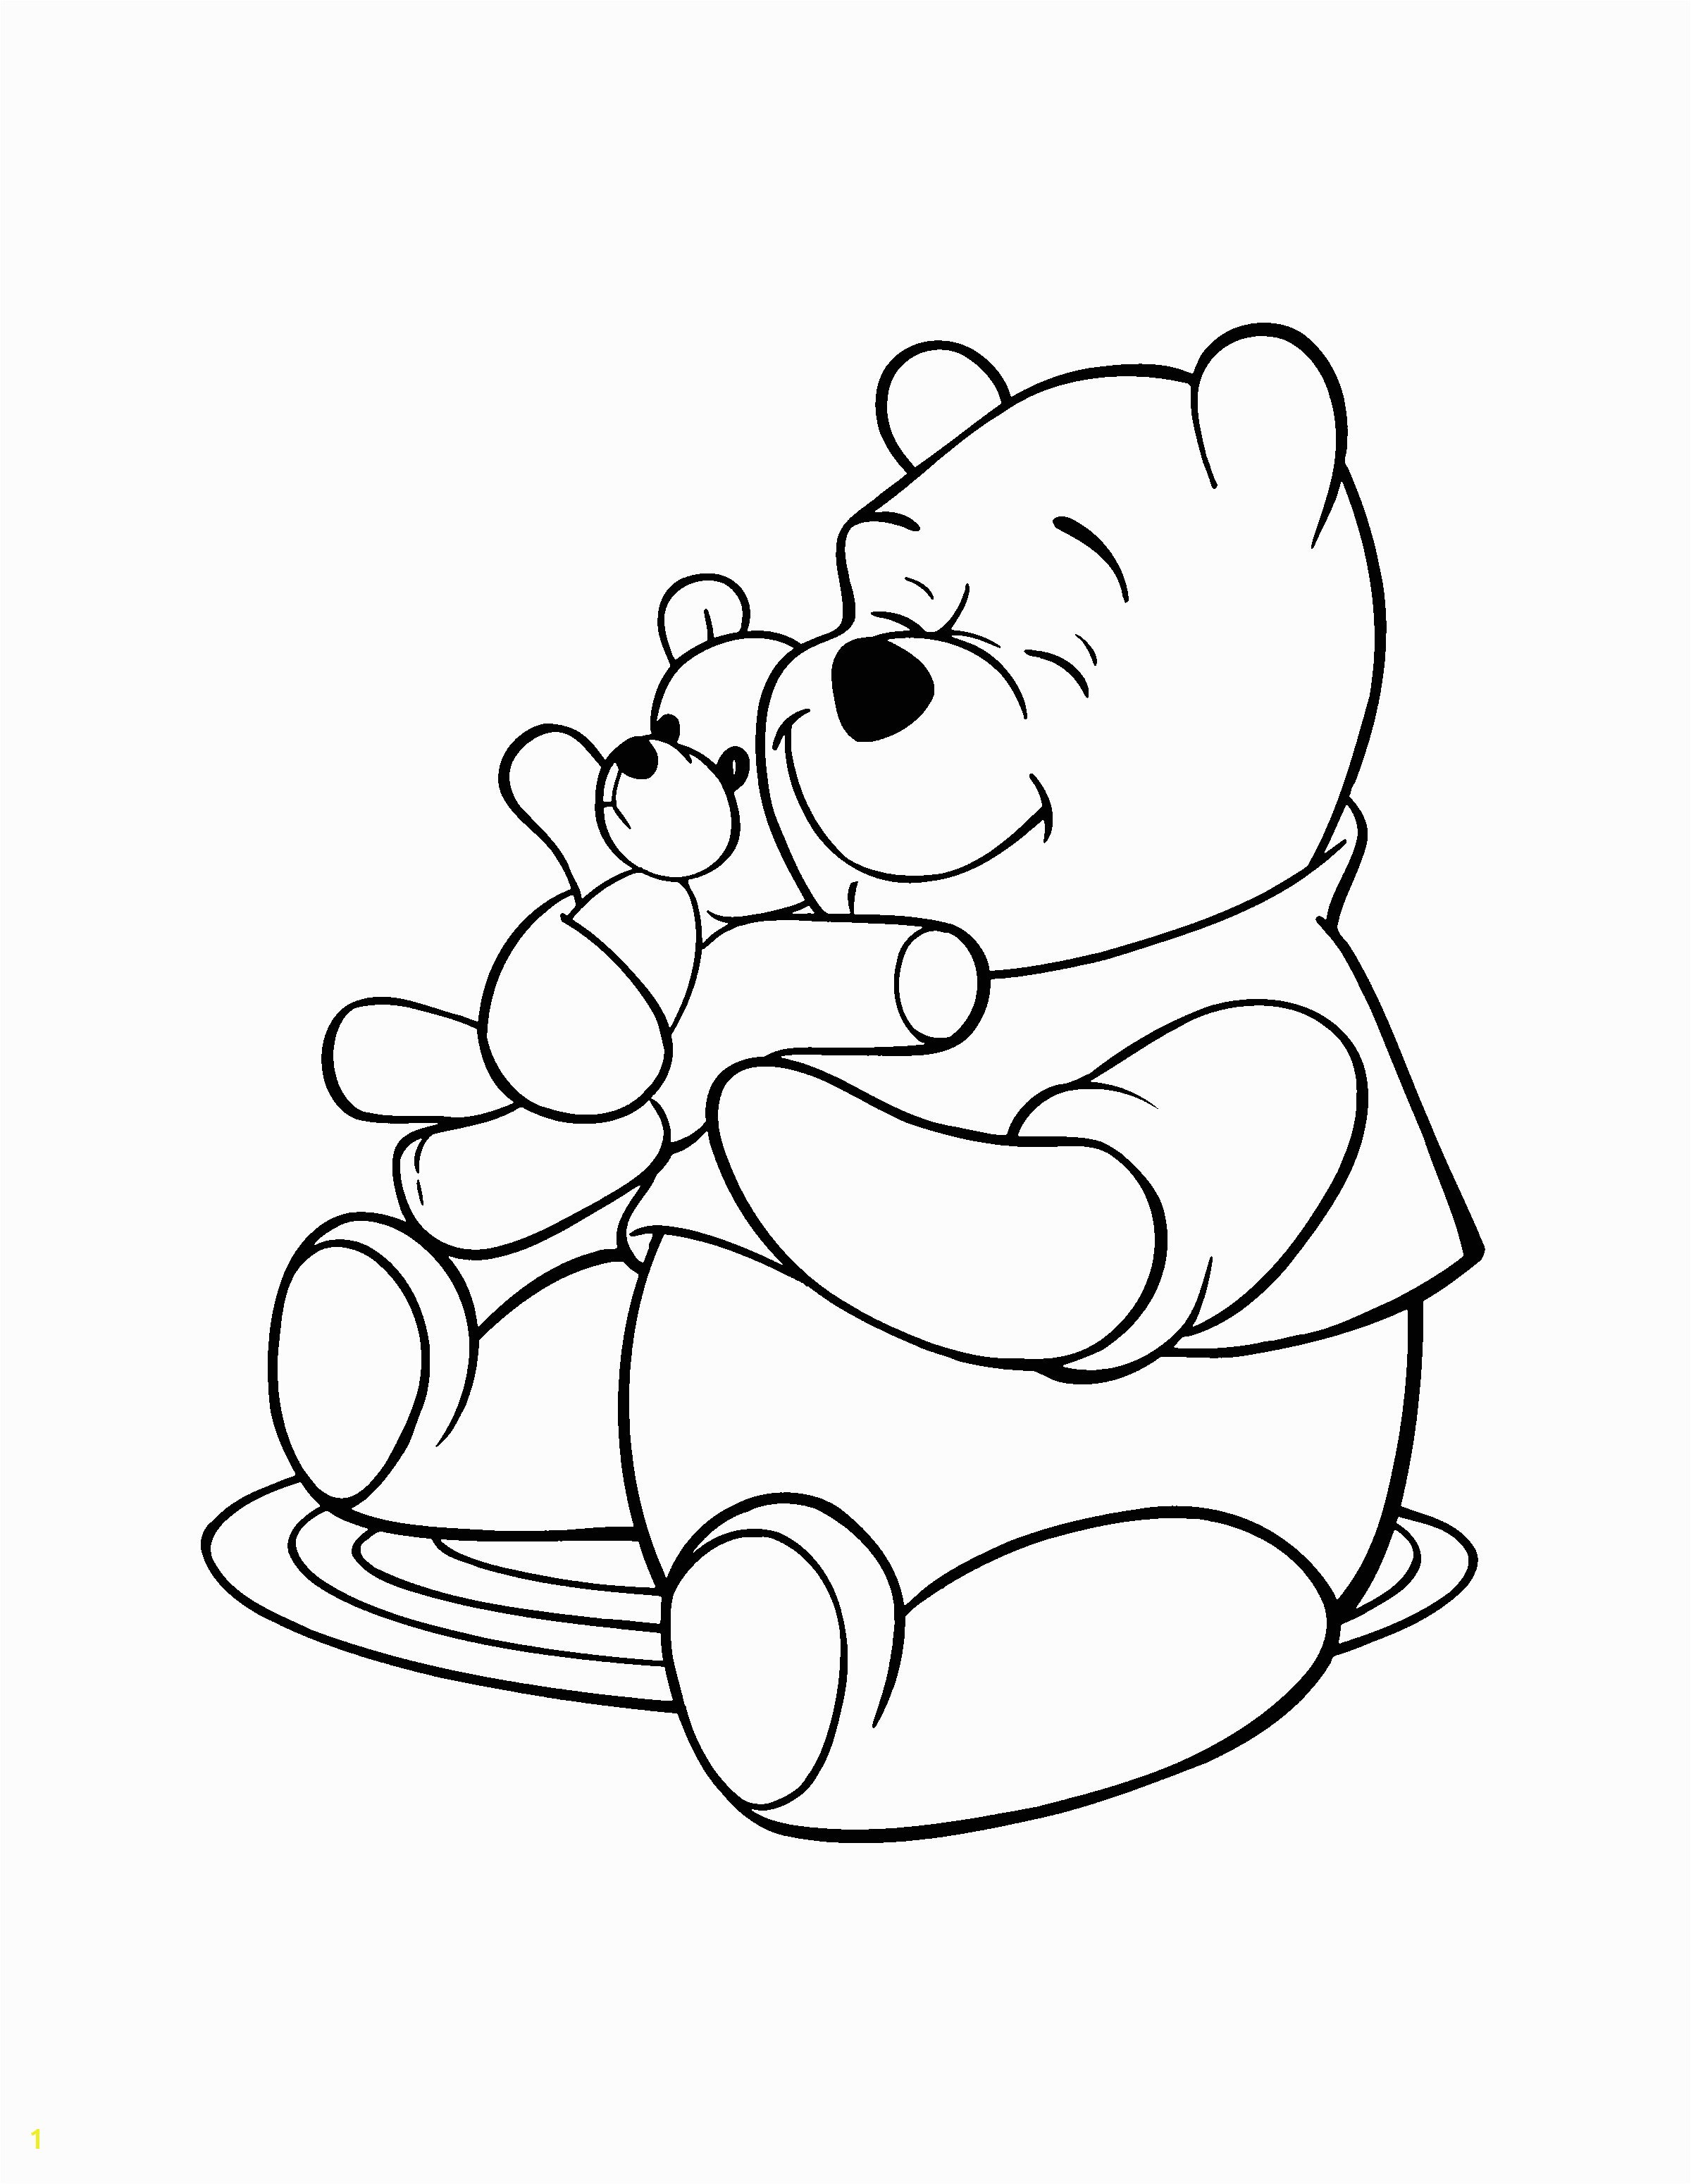 Winnie the Pooh Characters Coloring Pages Winnie the Pooh Coloring Pages